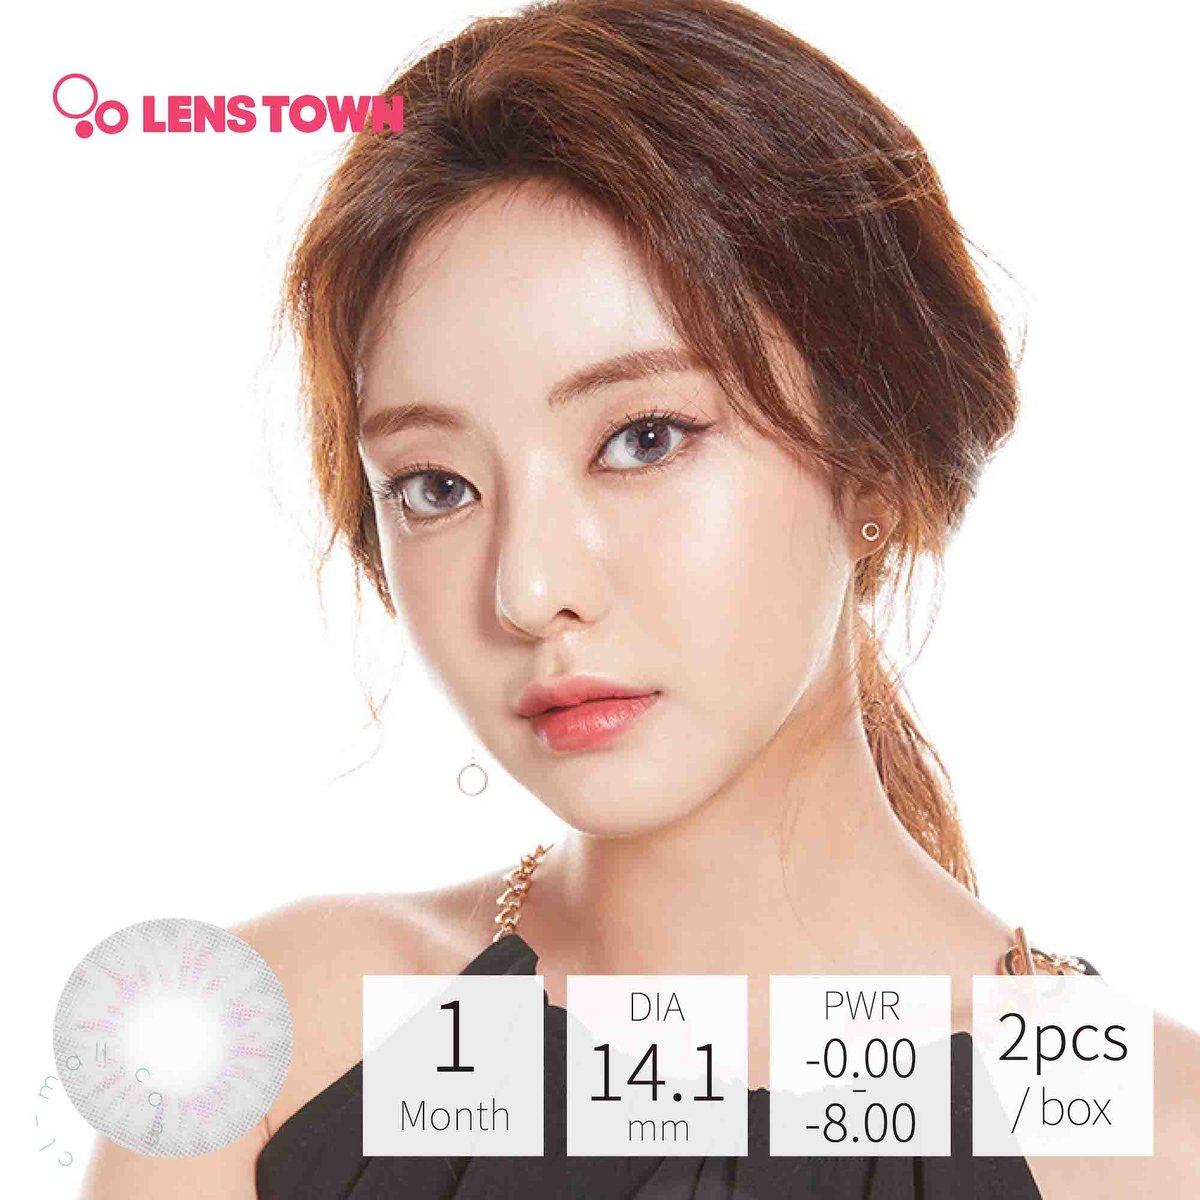 LENS TOWN STEALLIGHT GRAY MONTHLY CONTACT LENS 2 pcs,P:0.00